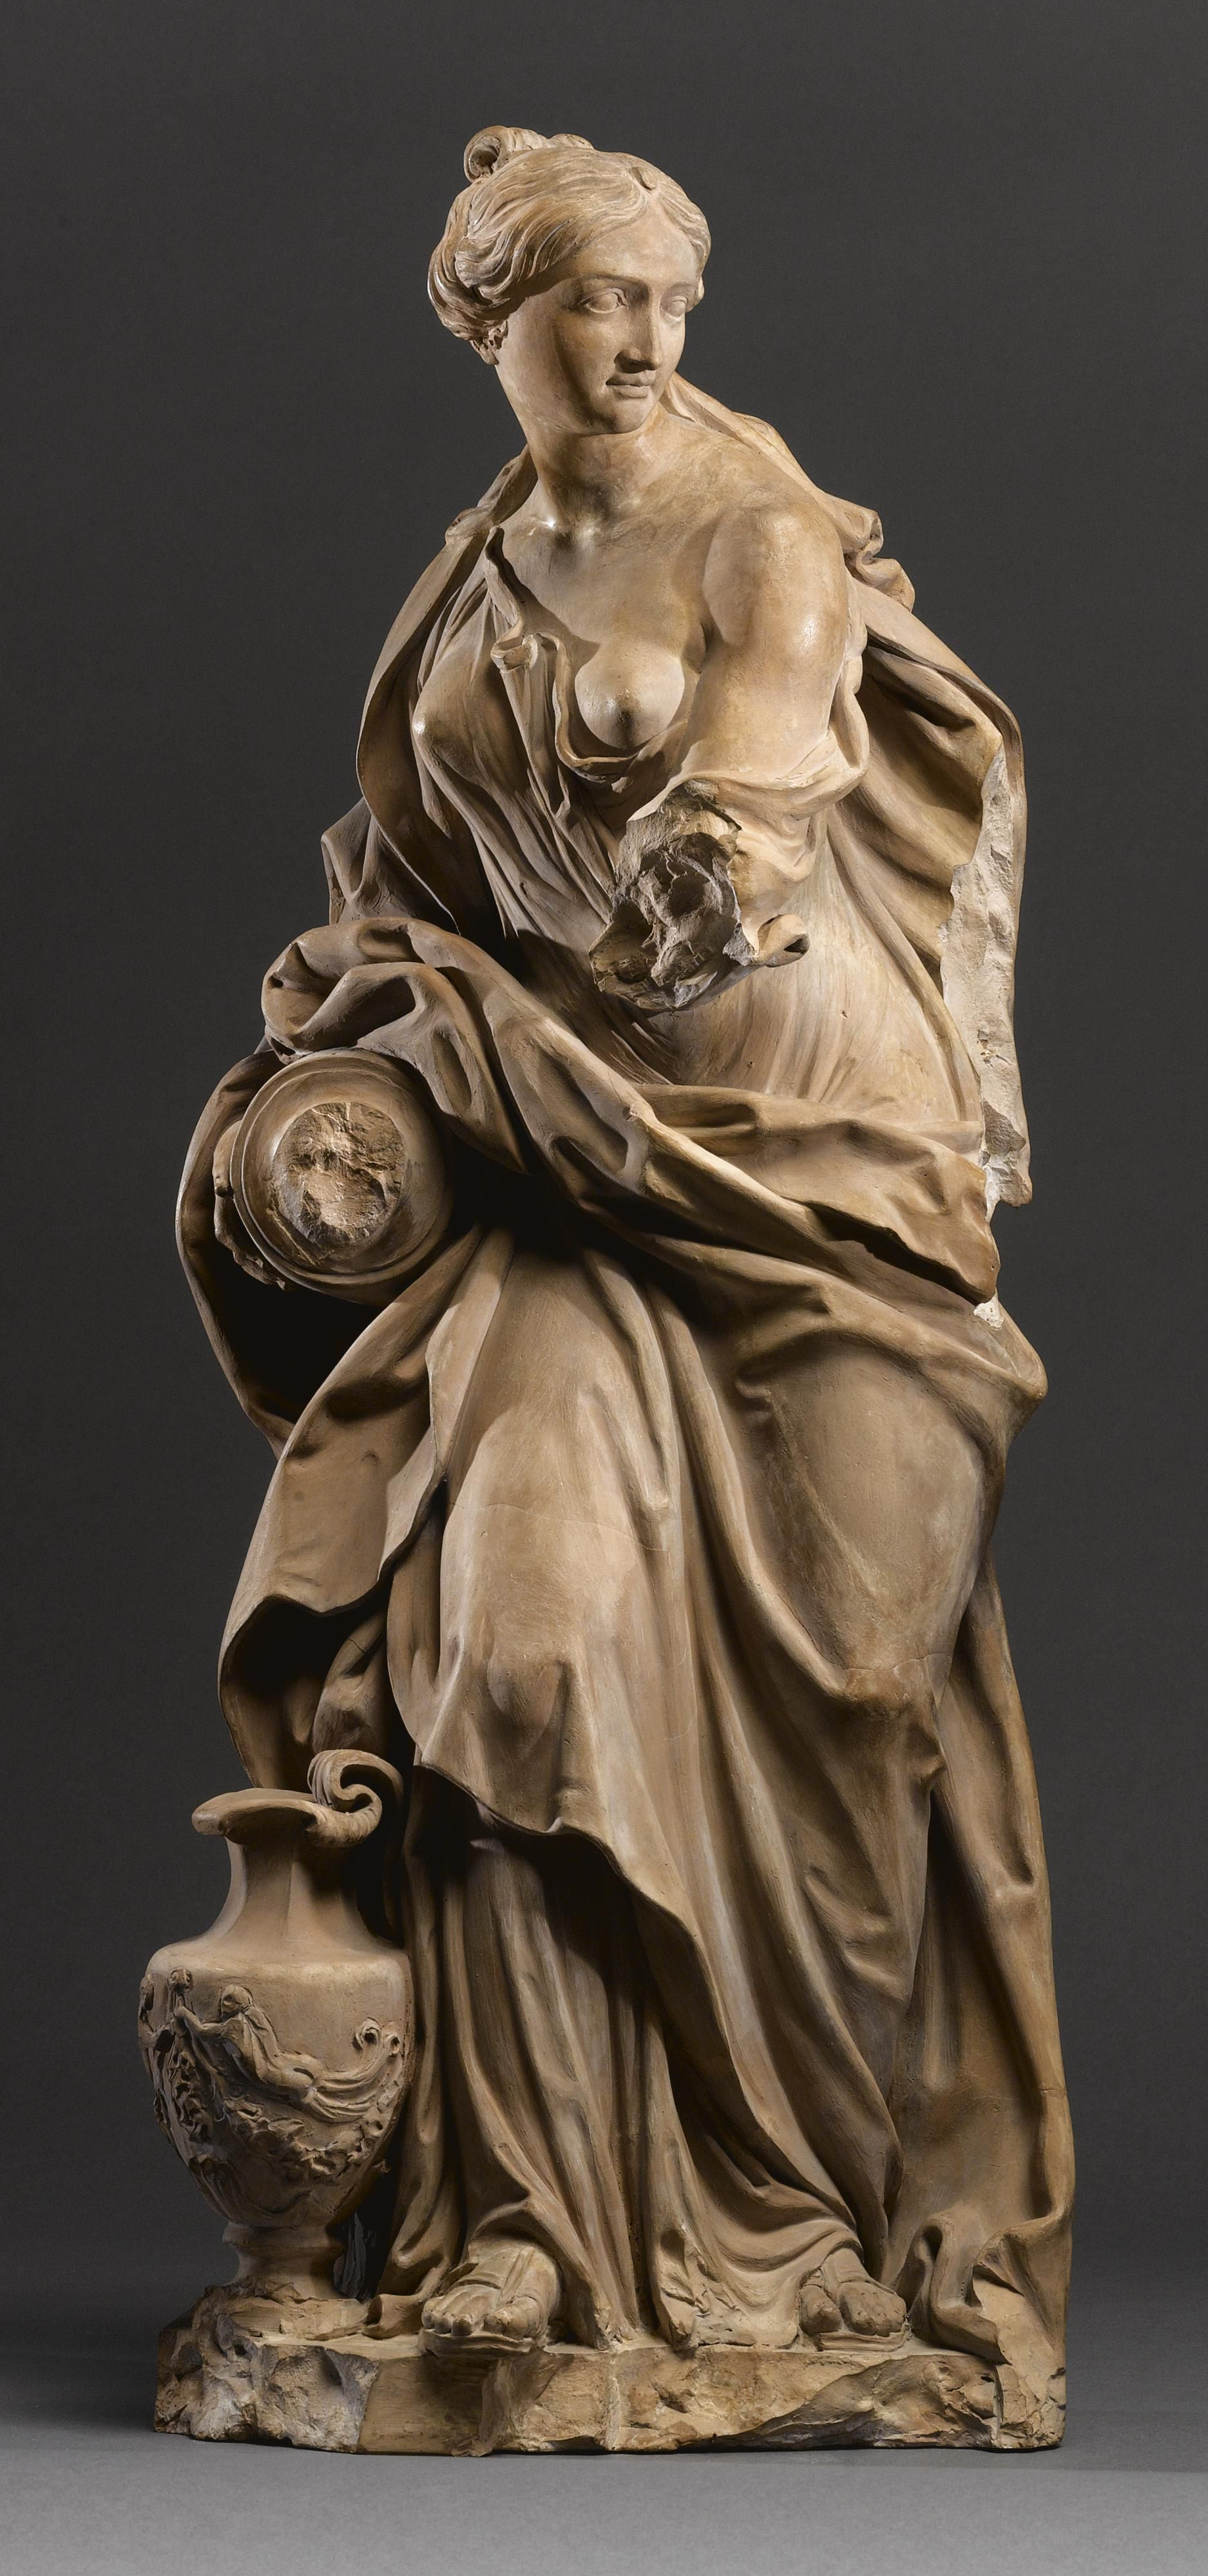 An Italian terracotta allegorical figure of Temperance, by Filippo Della Valle (1698-1768), first half 18th century.